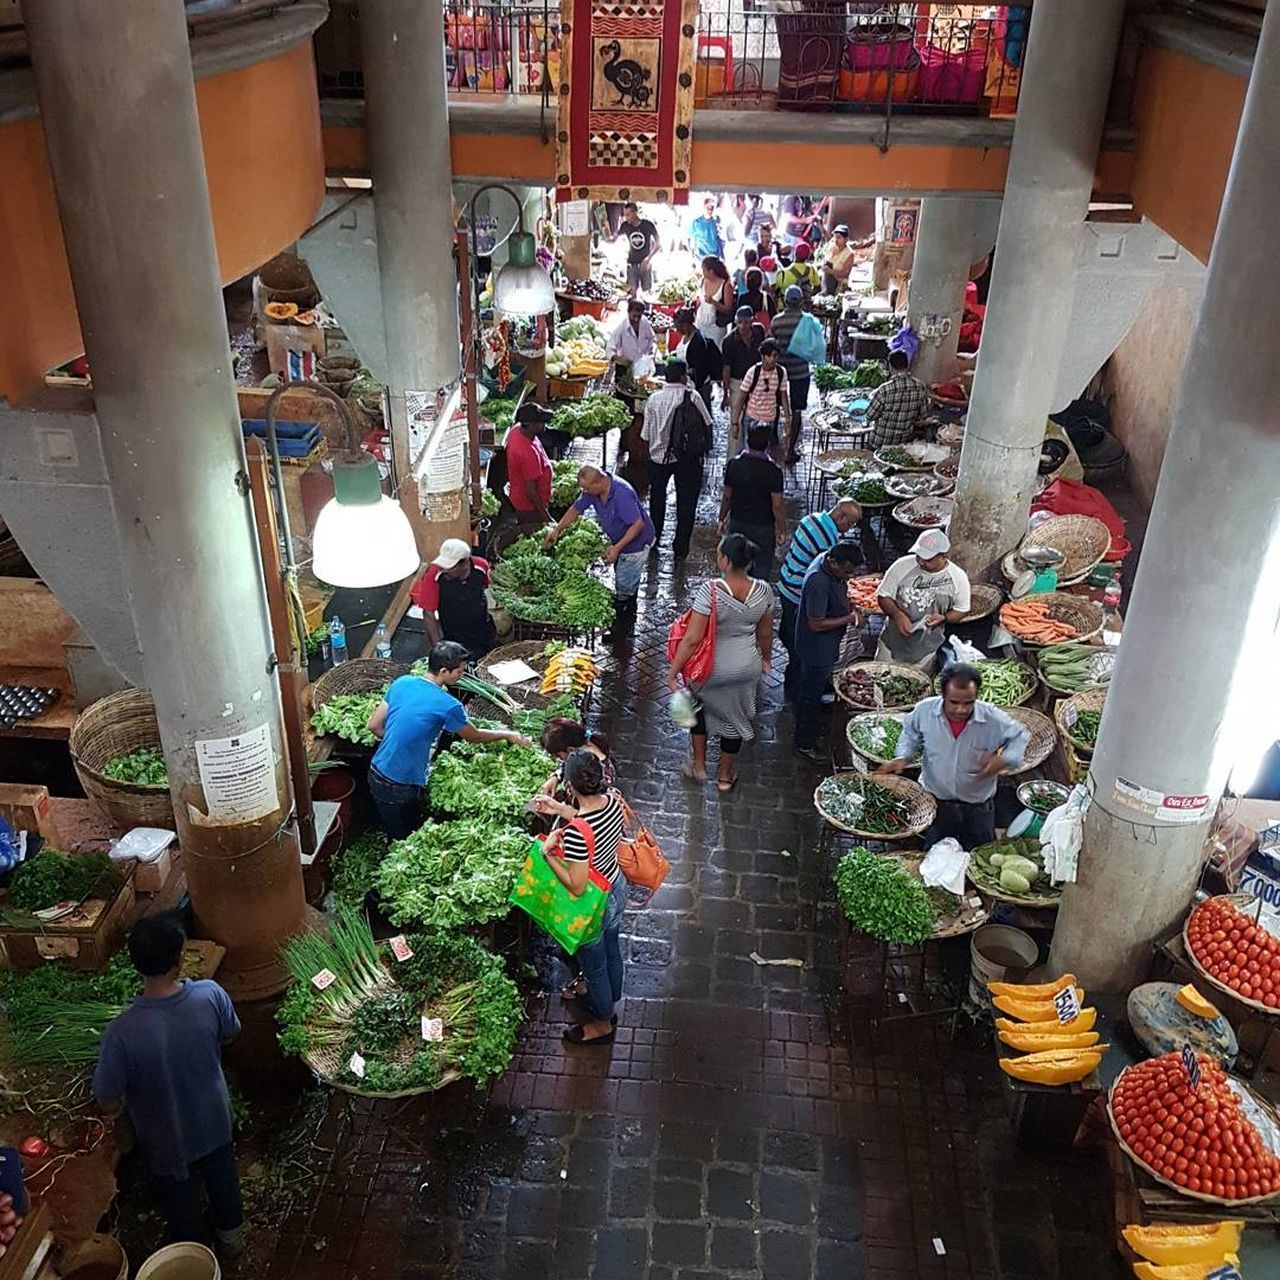 Market Veggies Vendor Commerce Buy Vegetables Fresh Fruit Retail  Business Finance And Industry Choice Day Indoors  People Adult